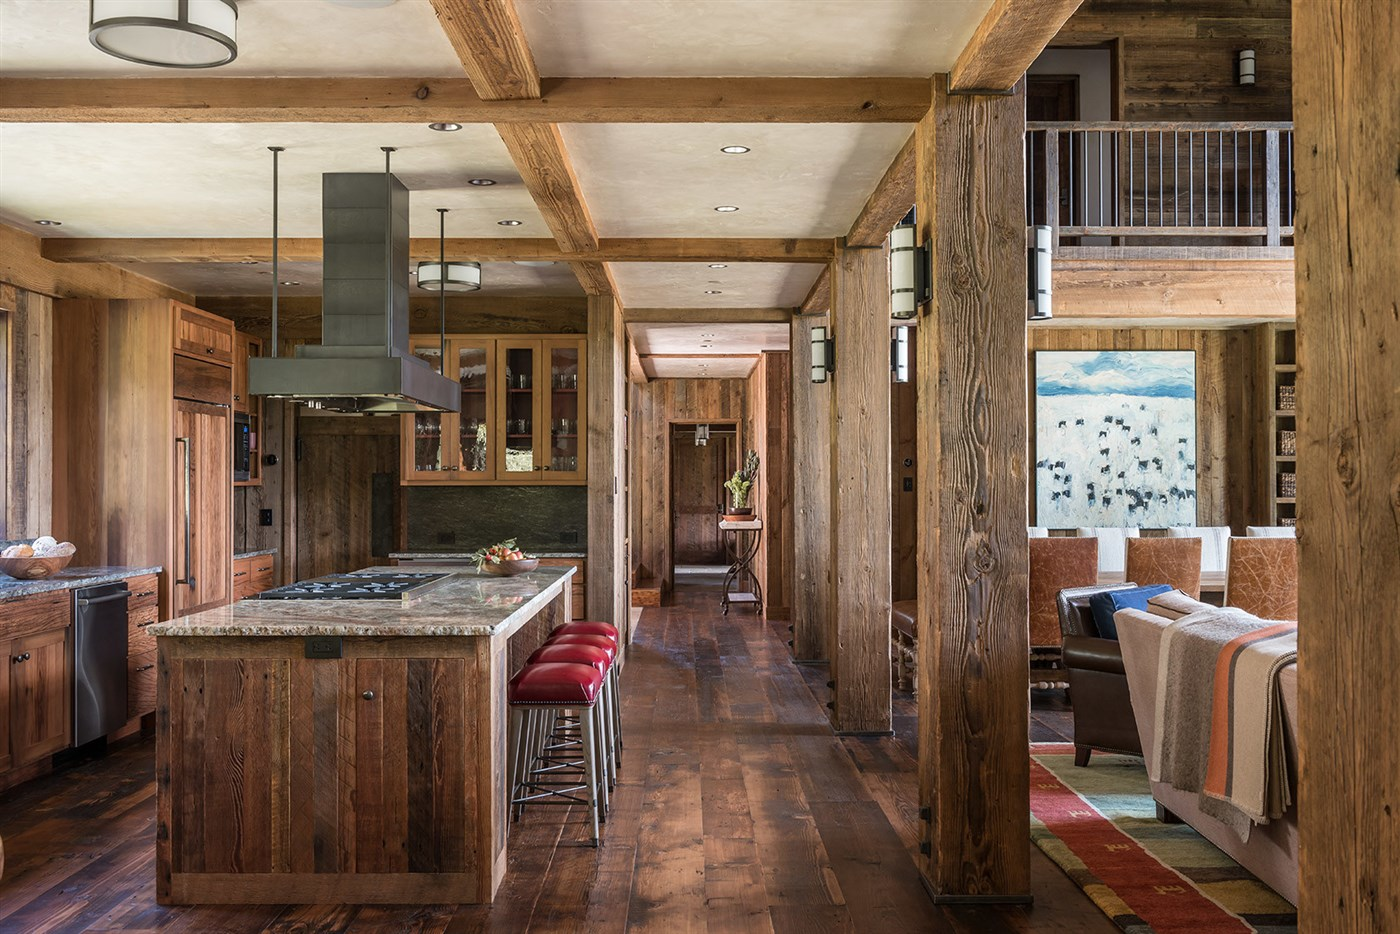 wood floor, beam ceiling design ideas, kitchen